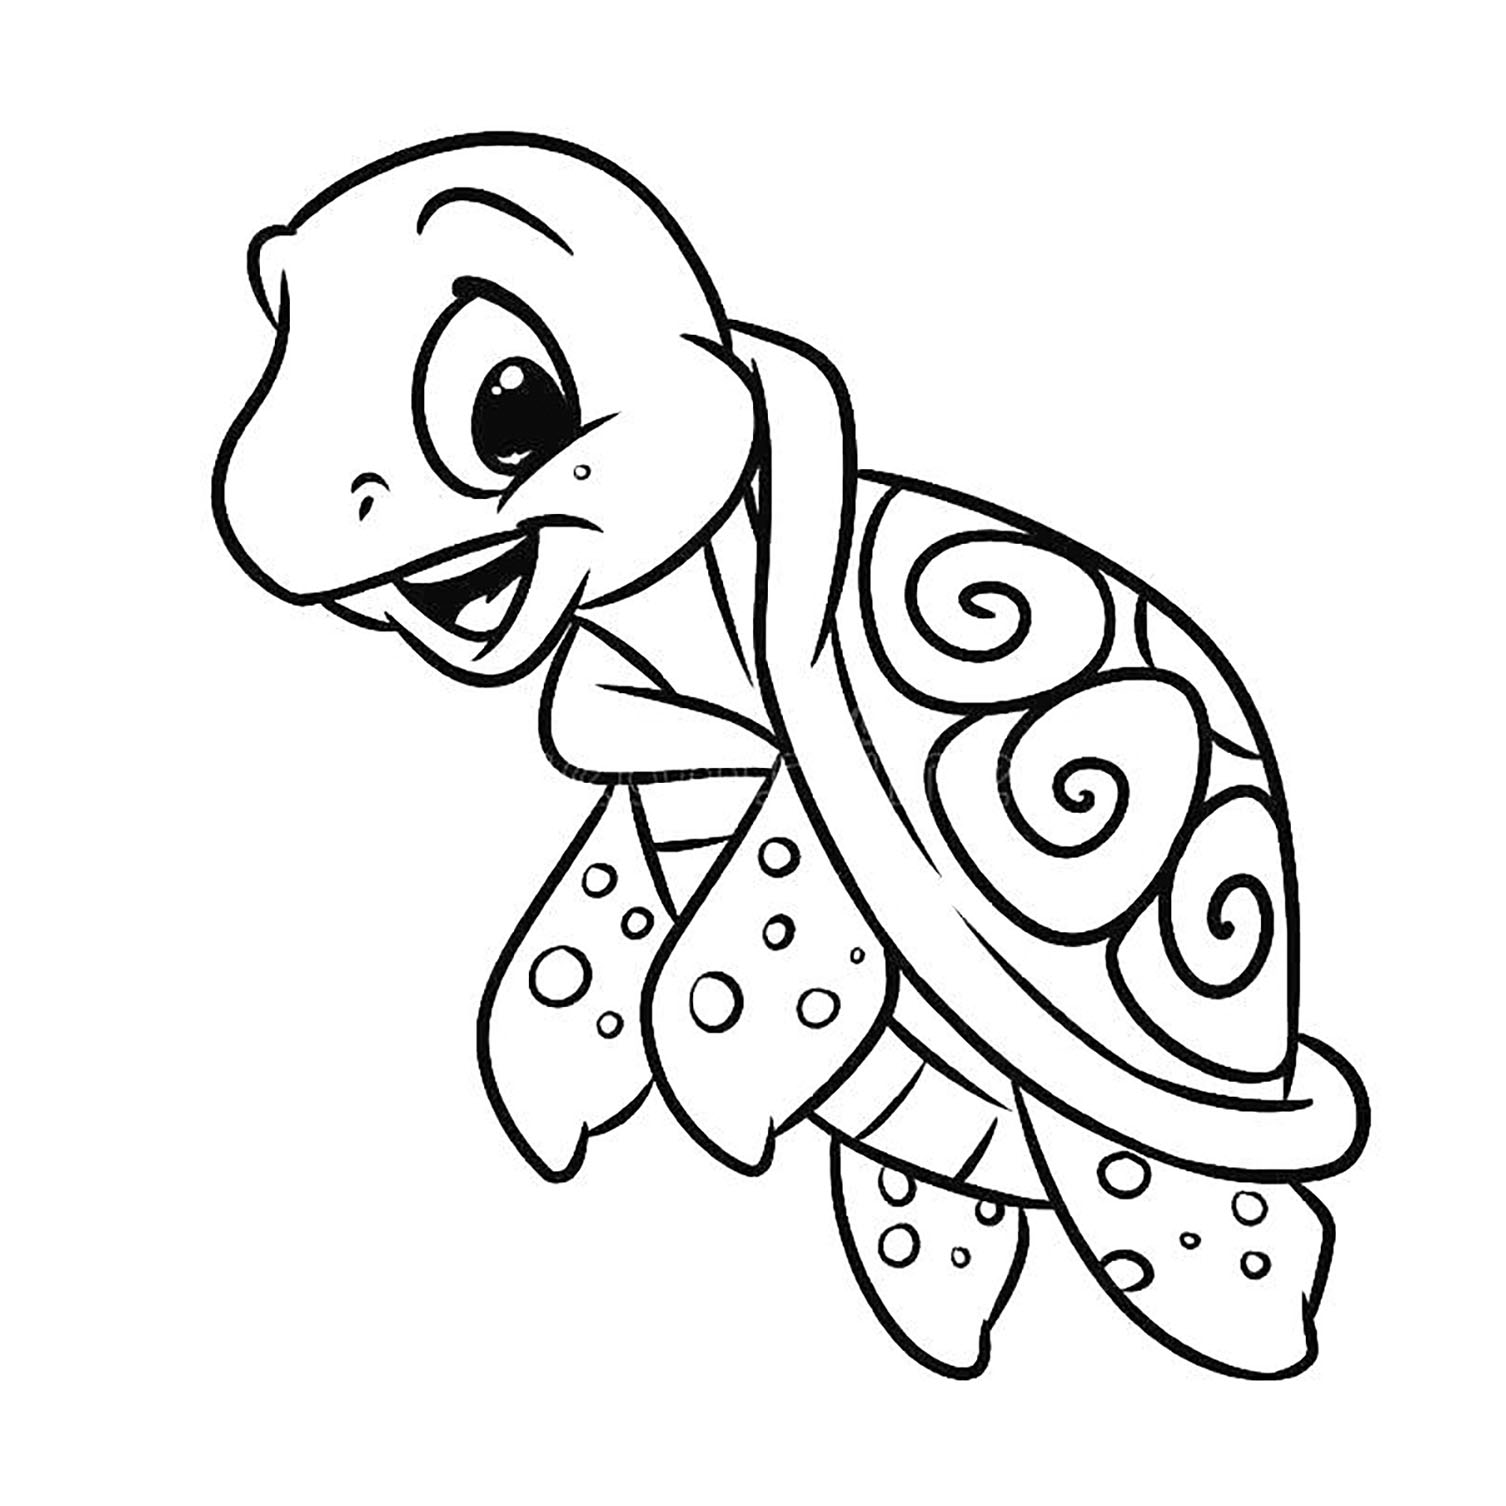 turtle printable coloring pages free printable turtle coloring pages for kids coloring turtle printable pages